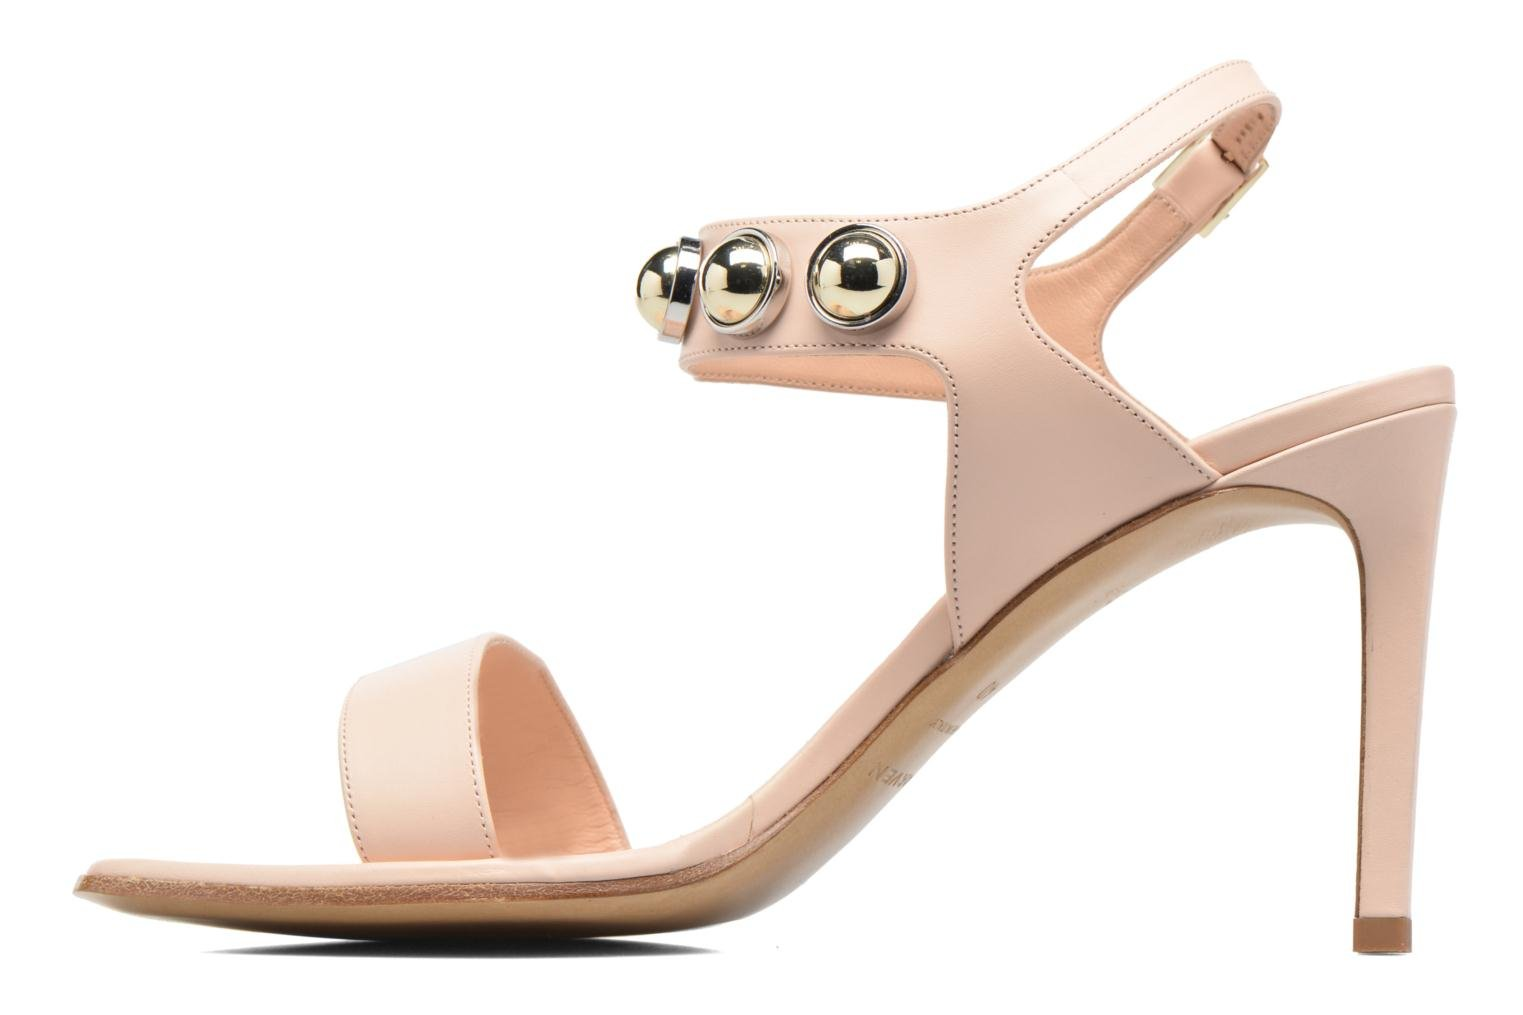 Sandales et nu-pieds Carven Resonance High Sandal Beige vue face